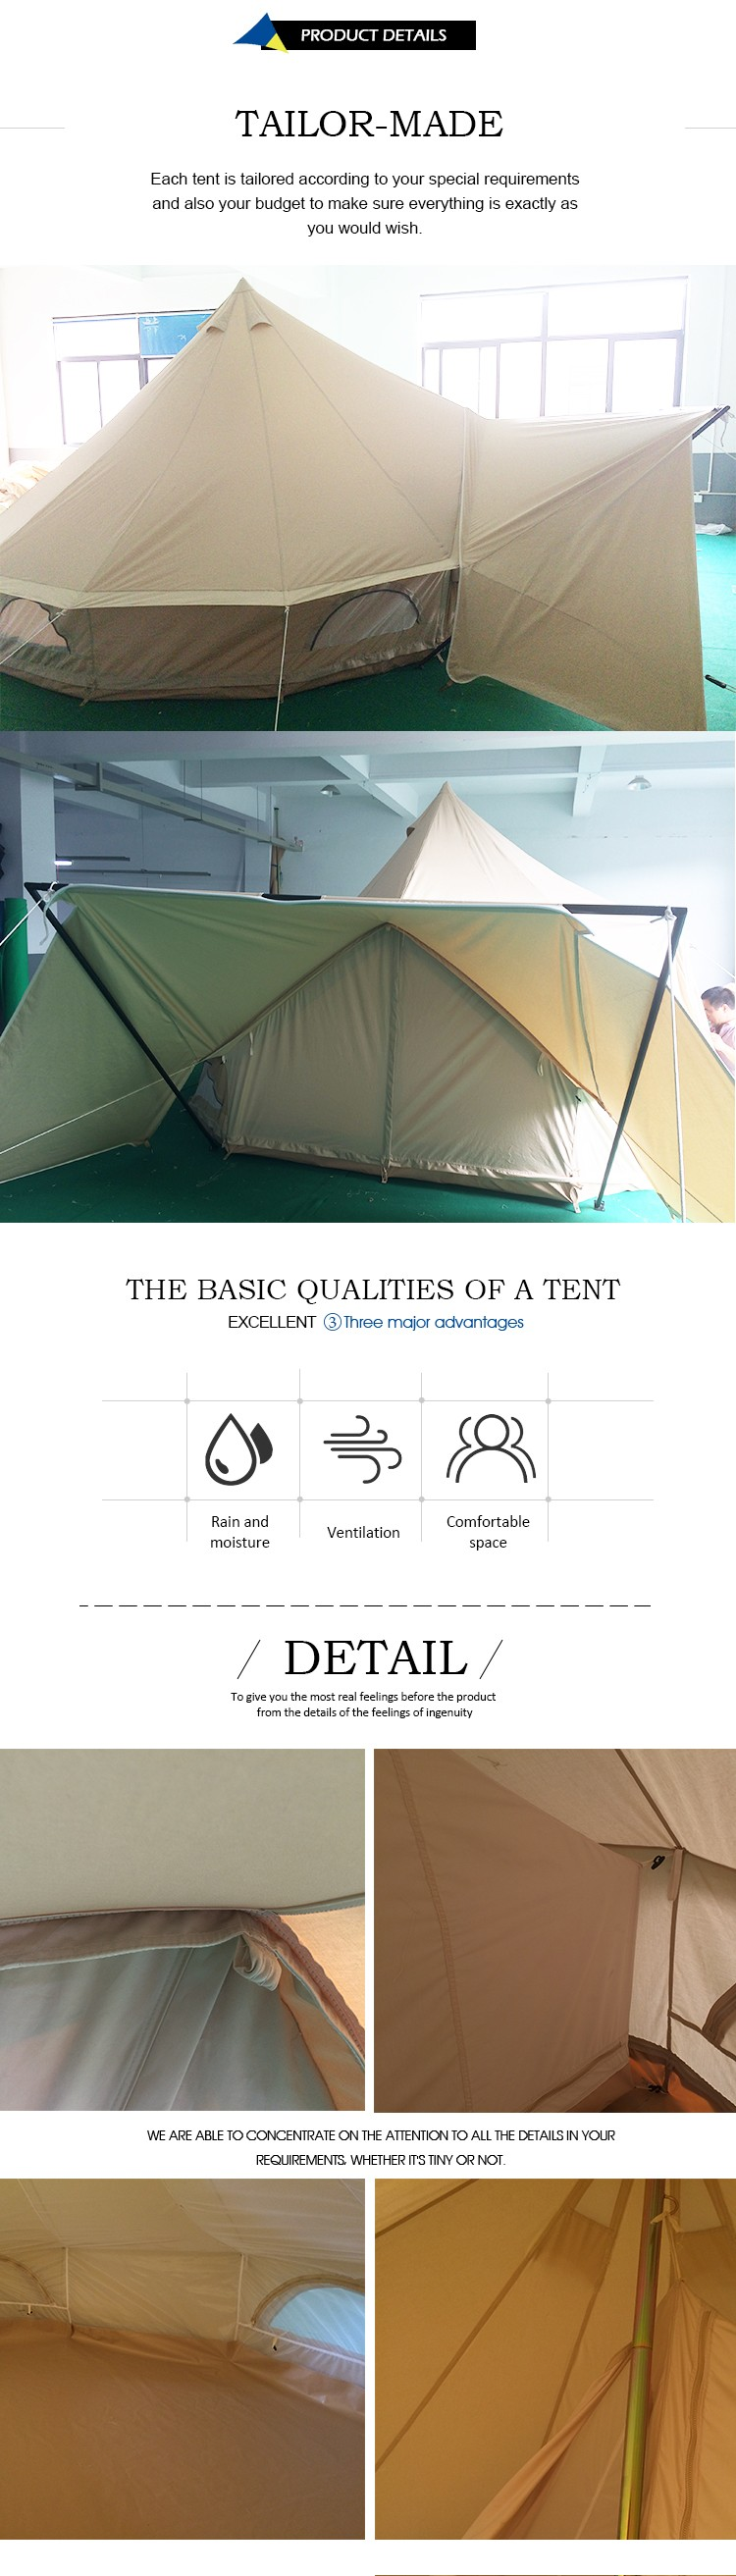 High quality large 5m canvas bell tent with canopy for family outdoor glamping